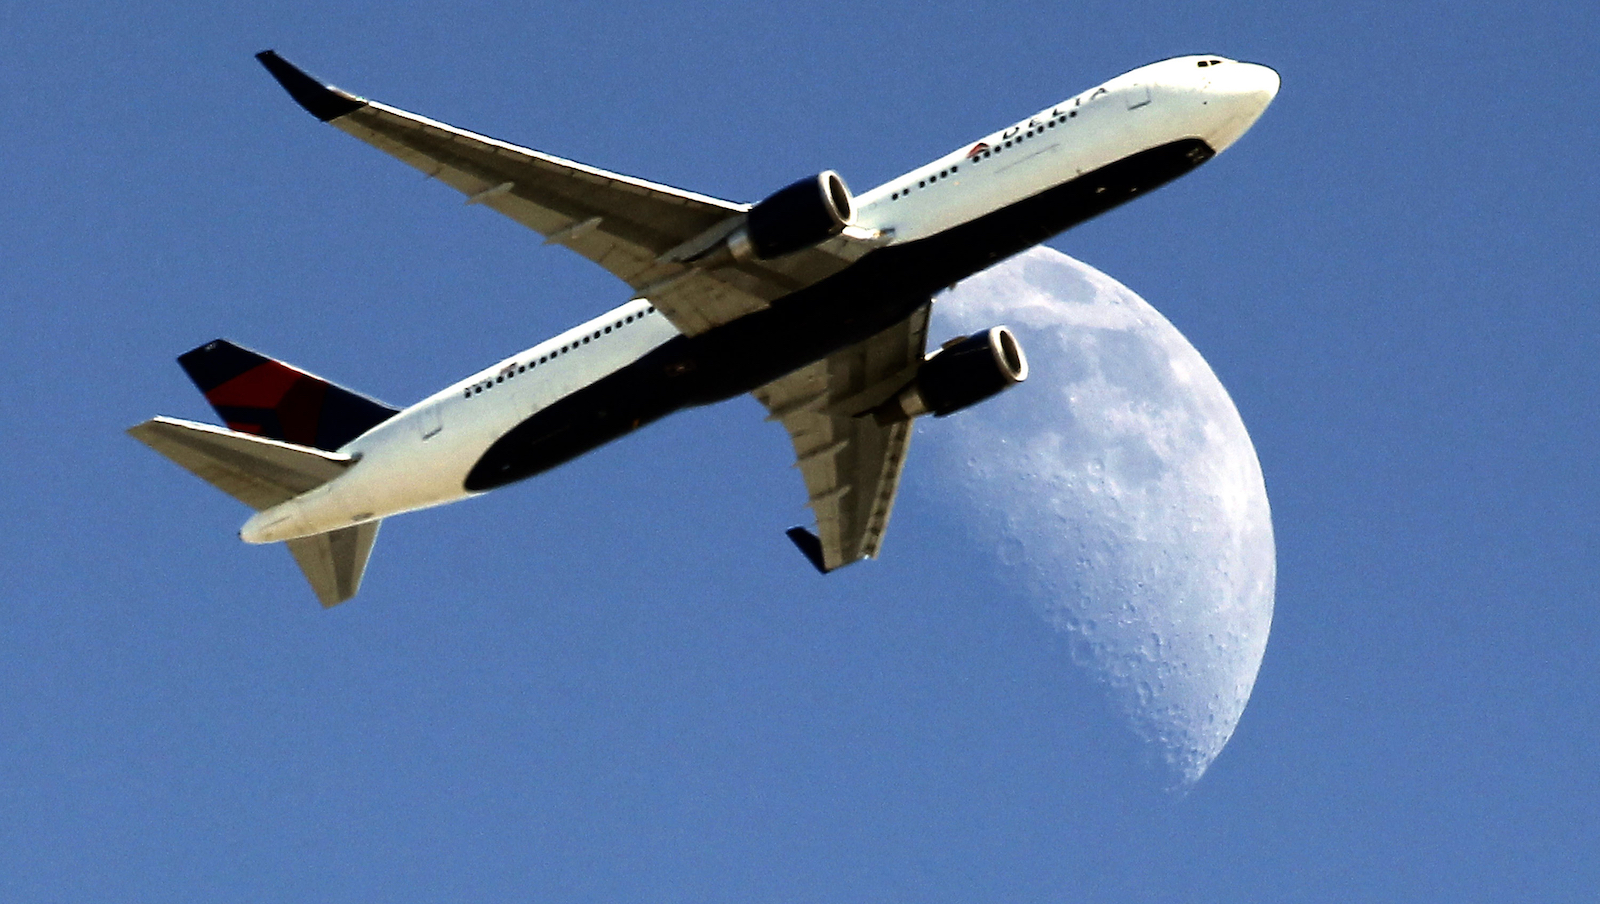 Delta Airlines flight DL370 from Managua Nicaragua  crosses over a waxing crescent moon as it passes over Whittier, Calif. on approach to the Los Angeles Airport (LAX) on Labor Day, Monday, Sept. 1, 2014.